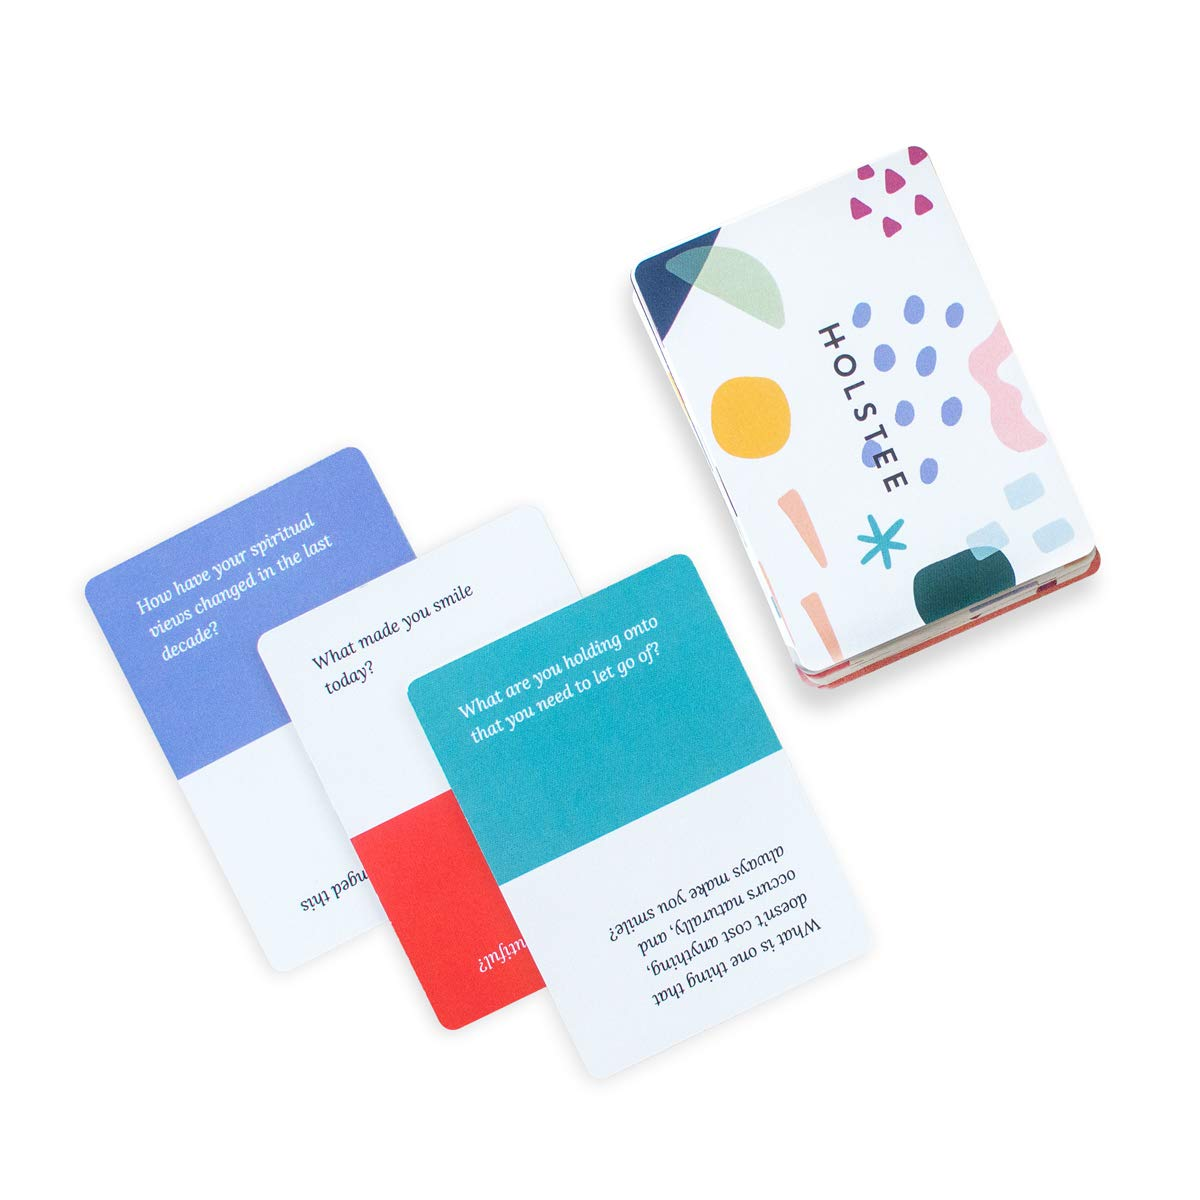 Holstee Reflection Cards - A Deck of 100+ Questions to Spark Meaningful Connections and Conversations